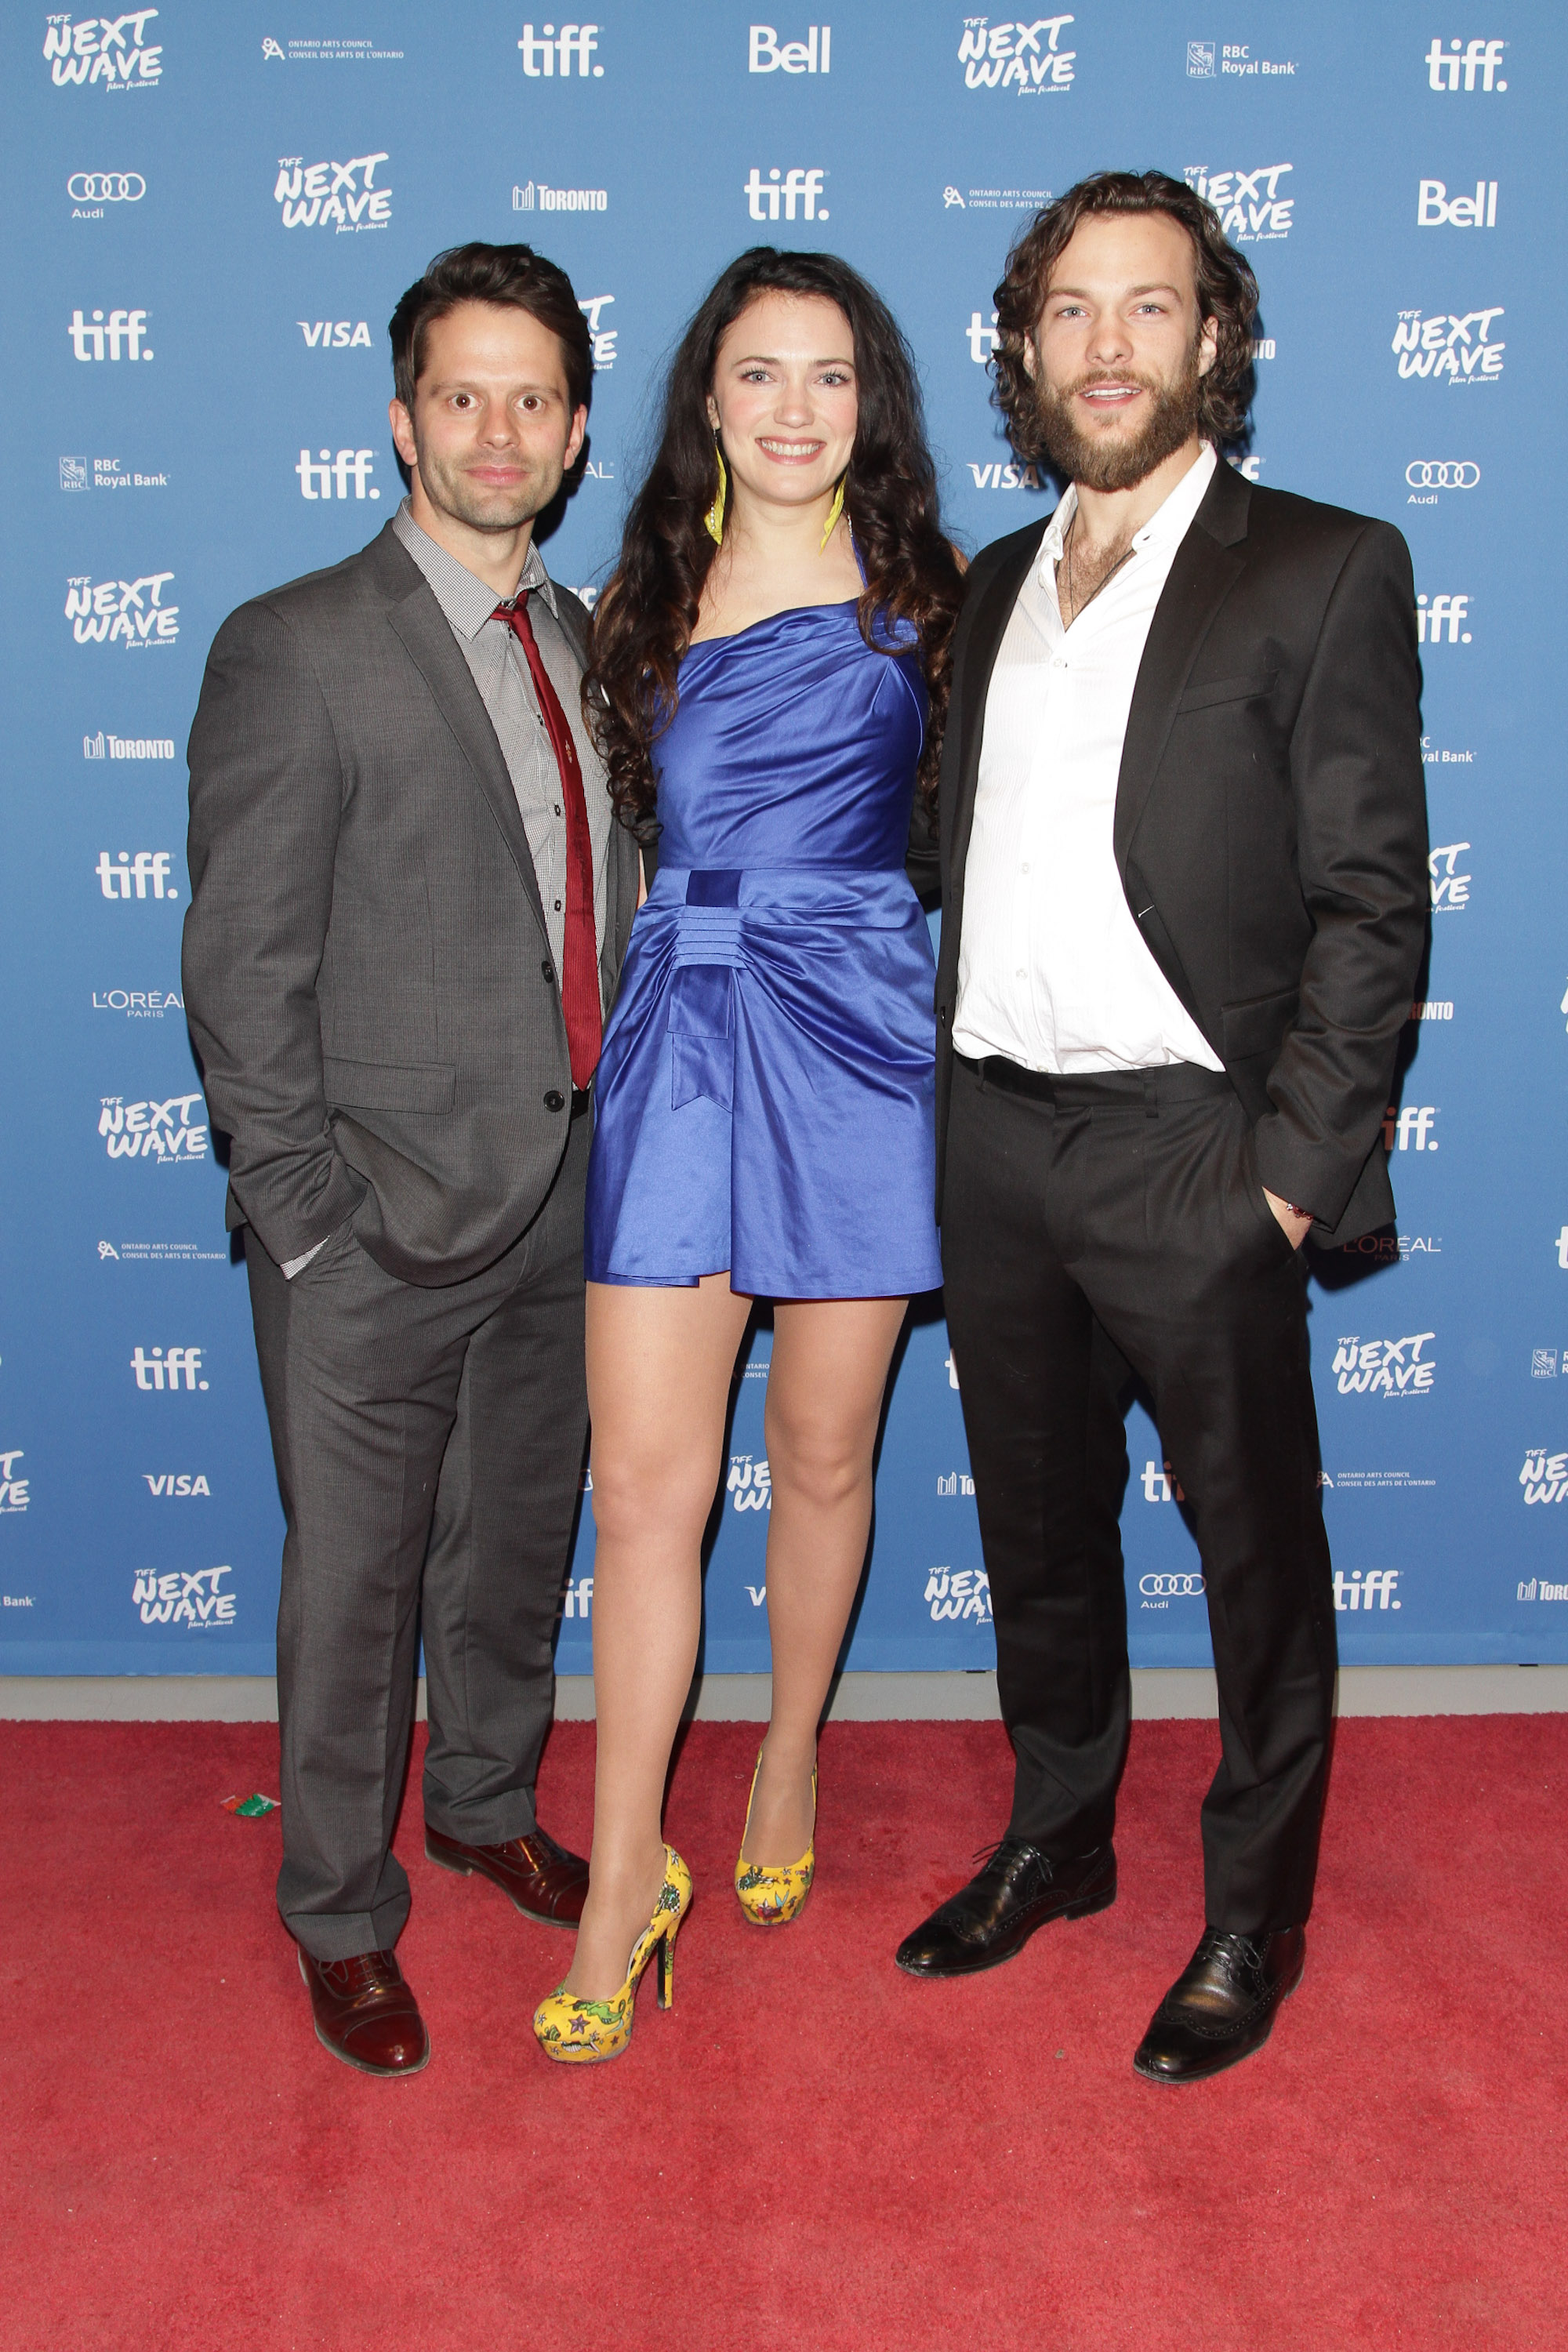 Stars Tim Doiron, April Mullen and Kyle Schmid arrive at the Tiff Bell Lightbox for the North American Premiere of Dead Before Dawn 3D which was closing night of the Tiff Next Wave Film Festival.  Photo by: Sarjoun Faour, WireImage/Getty for TIFF